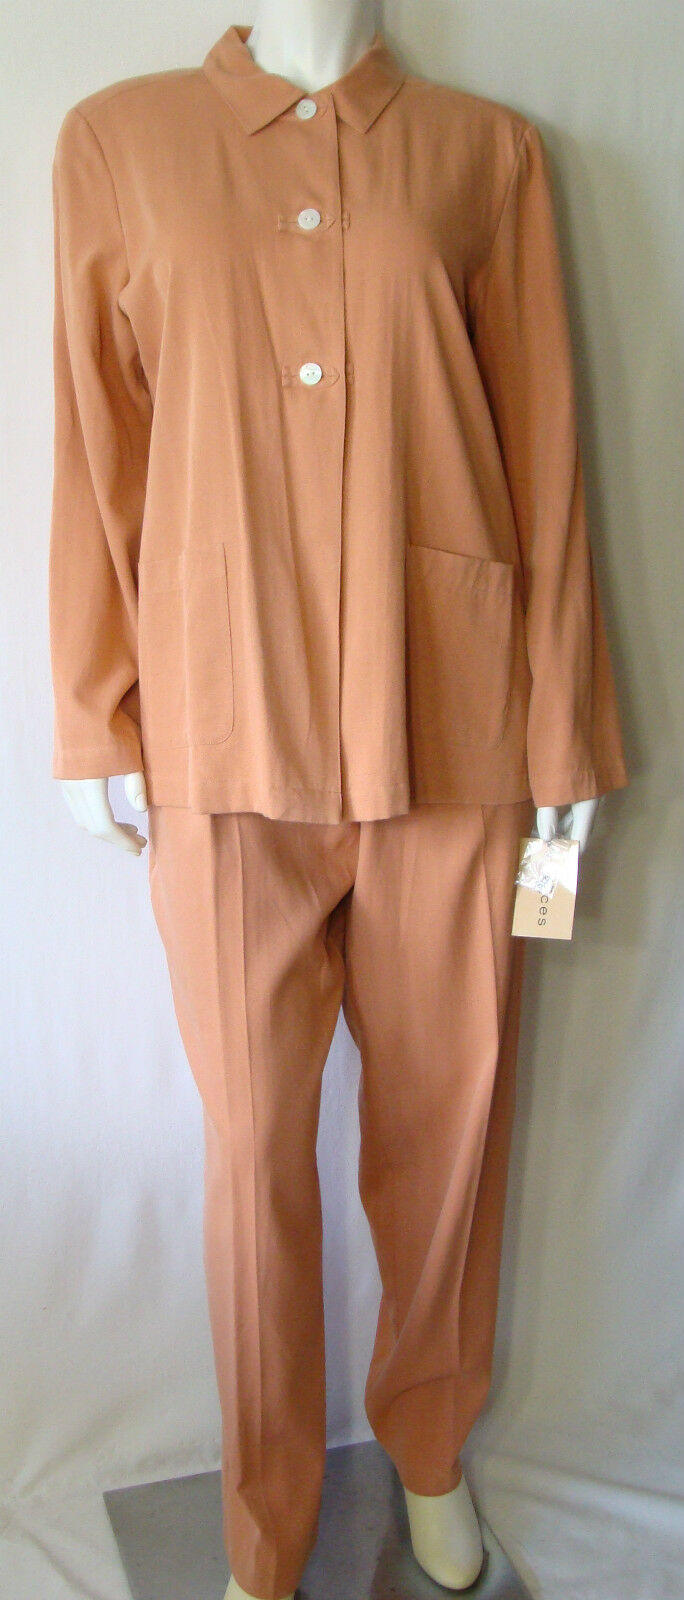 CHOICES Career Coral Top & Pant Set Silk & Cotton Size L NWT Retail  80.00